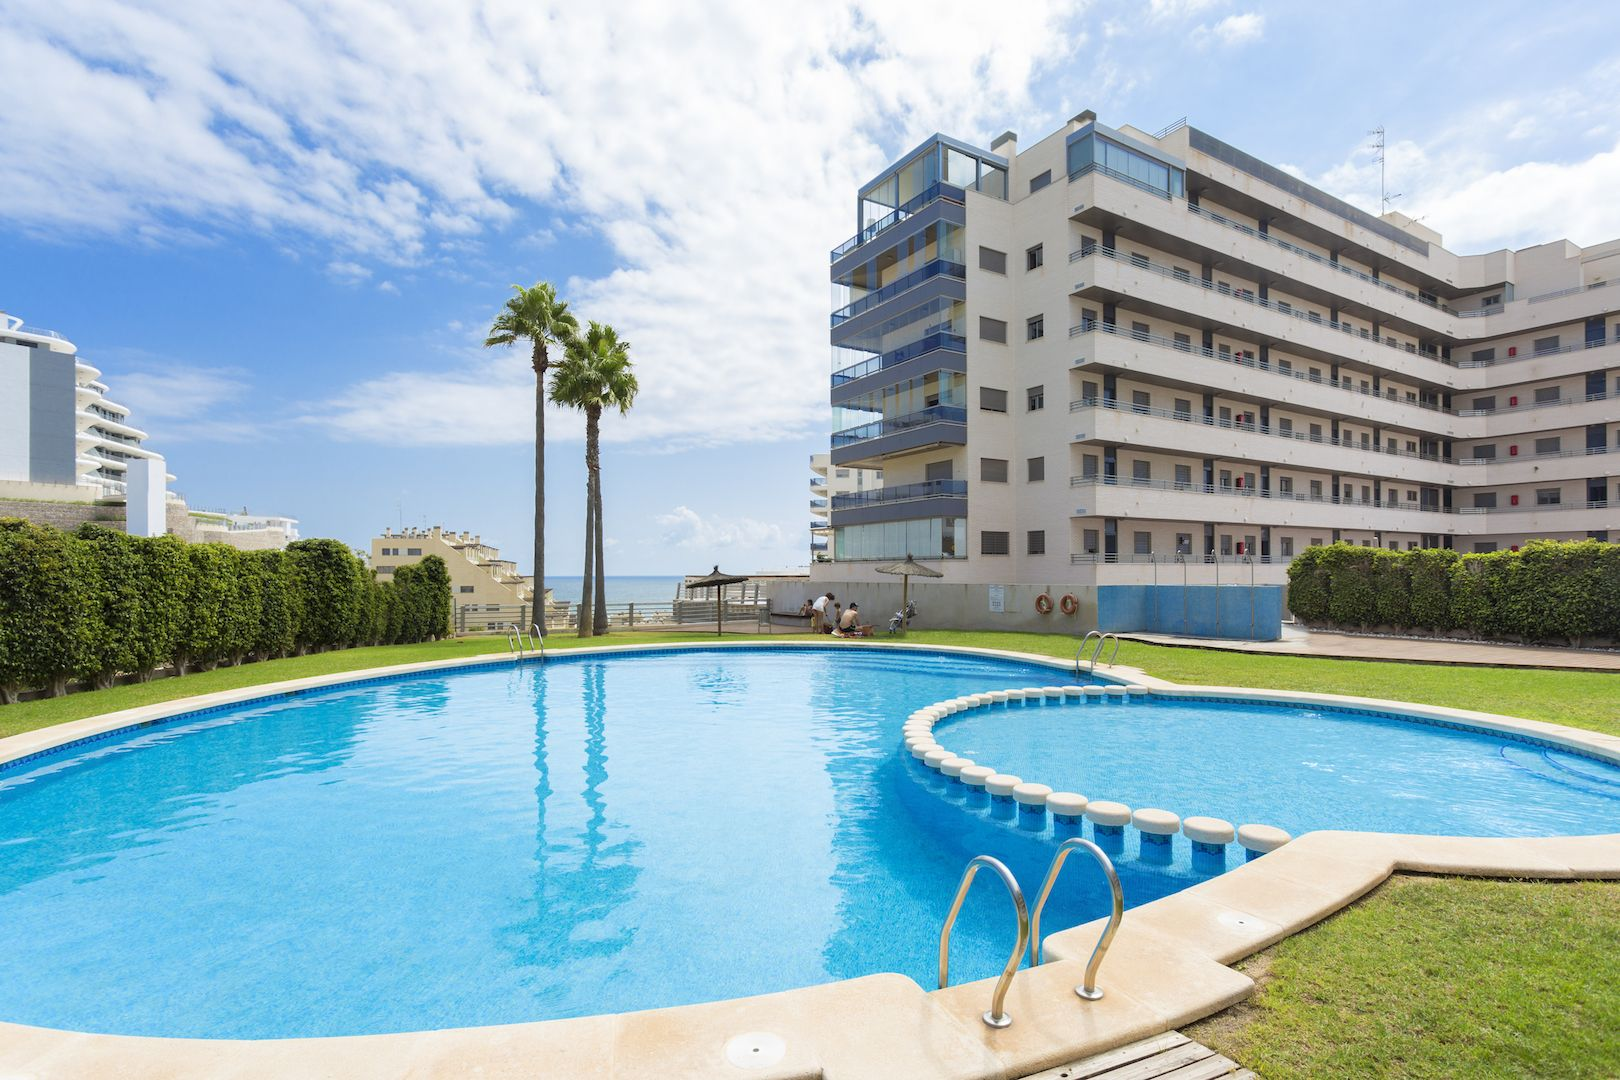 Flats and penthouses of 2, 3 and 4 bedrooms a few meters from the sea in Arenales del Sol. 14